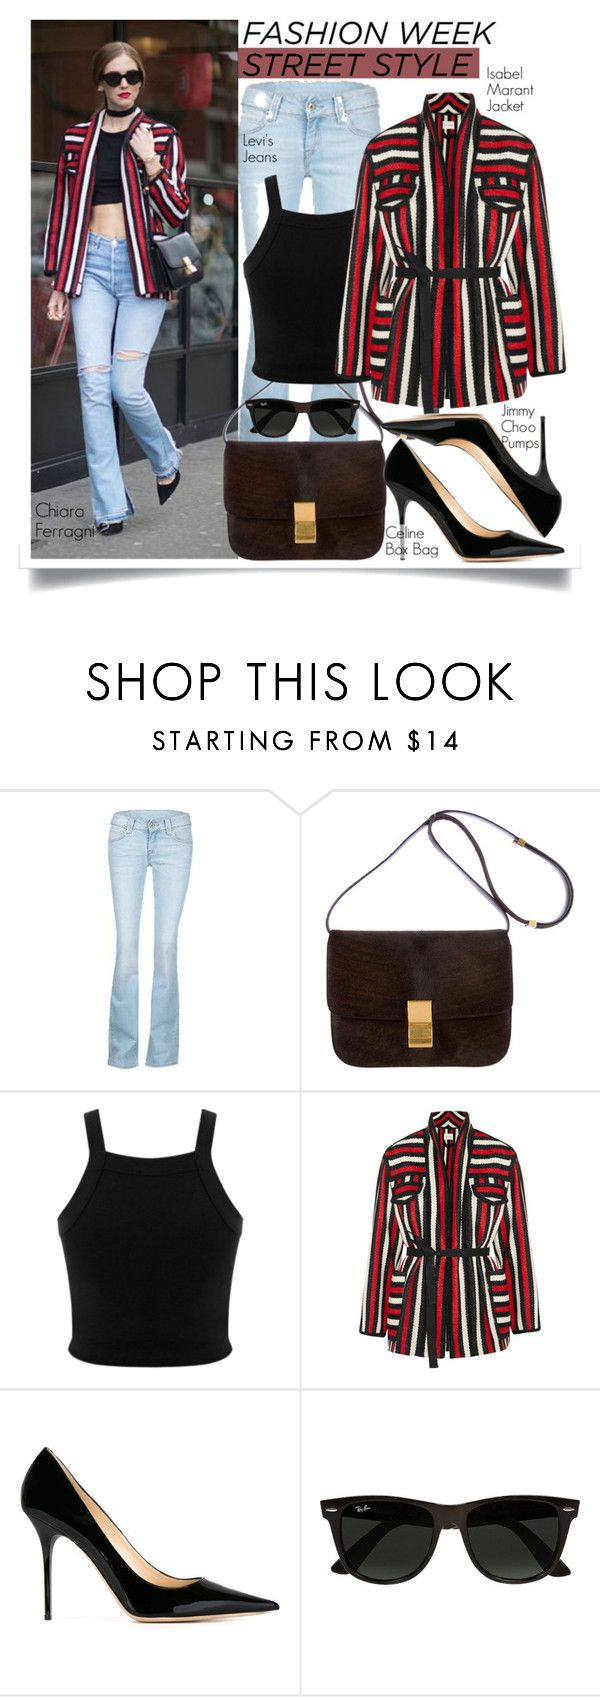 """""""PFW Style: Chiara Ferragni 2"""" by eraining ❤ liked on Polyvore featuring Levi's, CÉLINE, Miss Selfridge, Étoile Isabel Marant, Jimmy Choo, Ray-Ban, PFW, BloggerStyle, celebstyle and CelebrityStyle"""